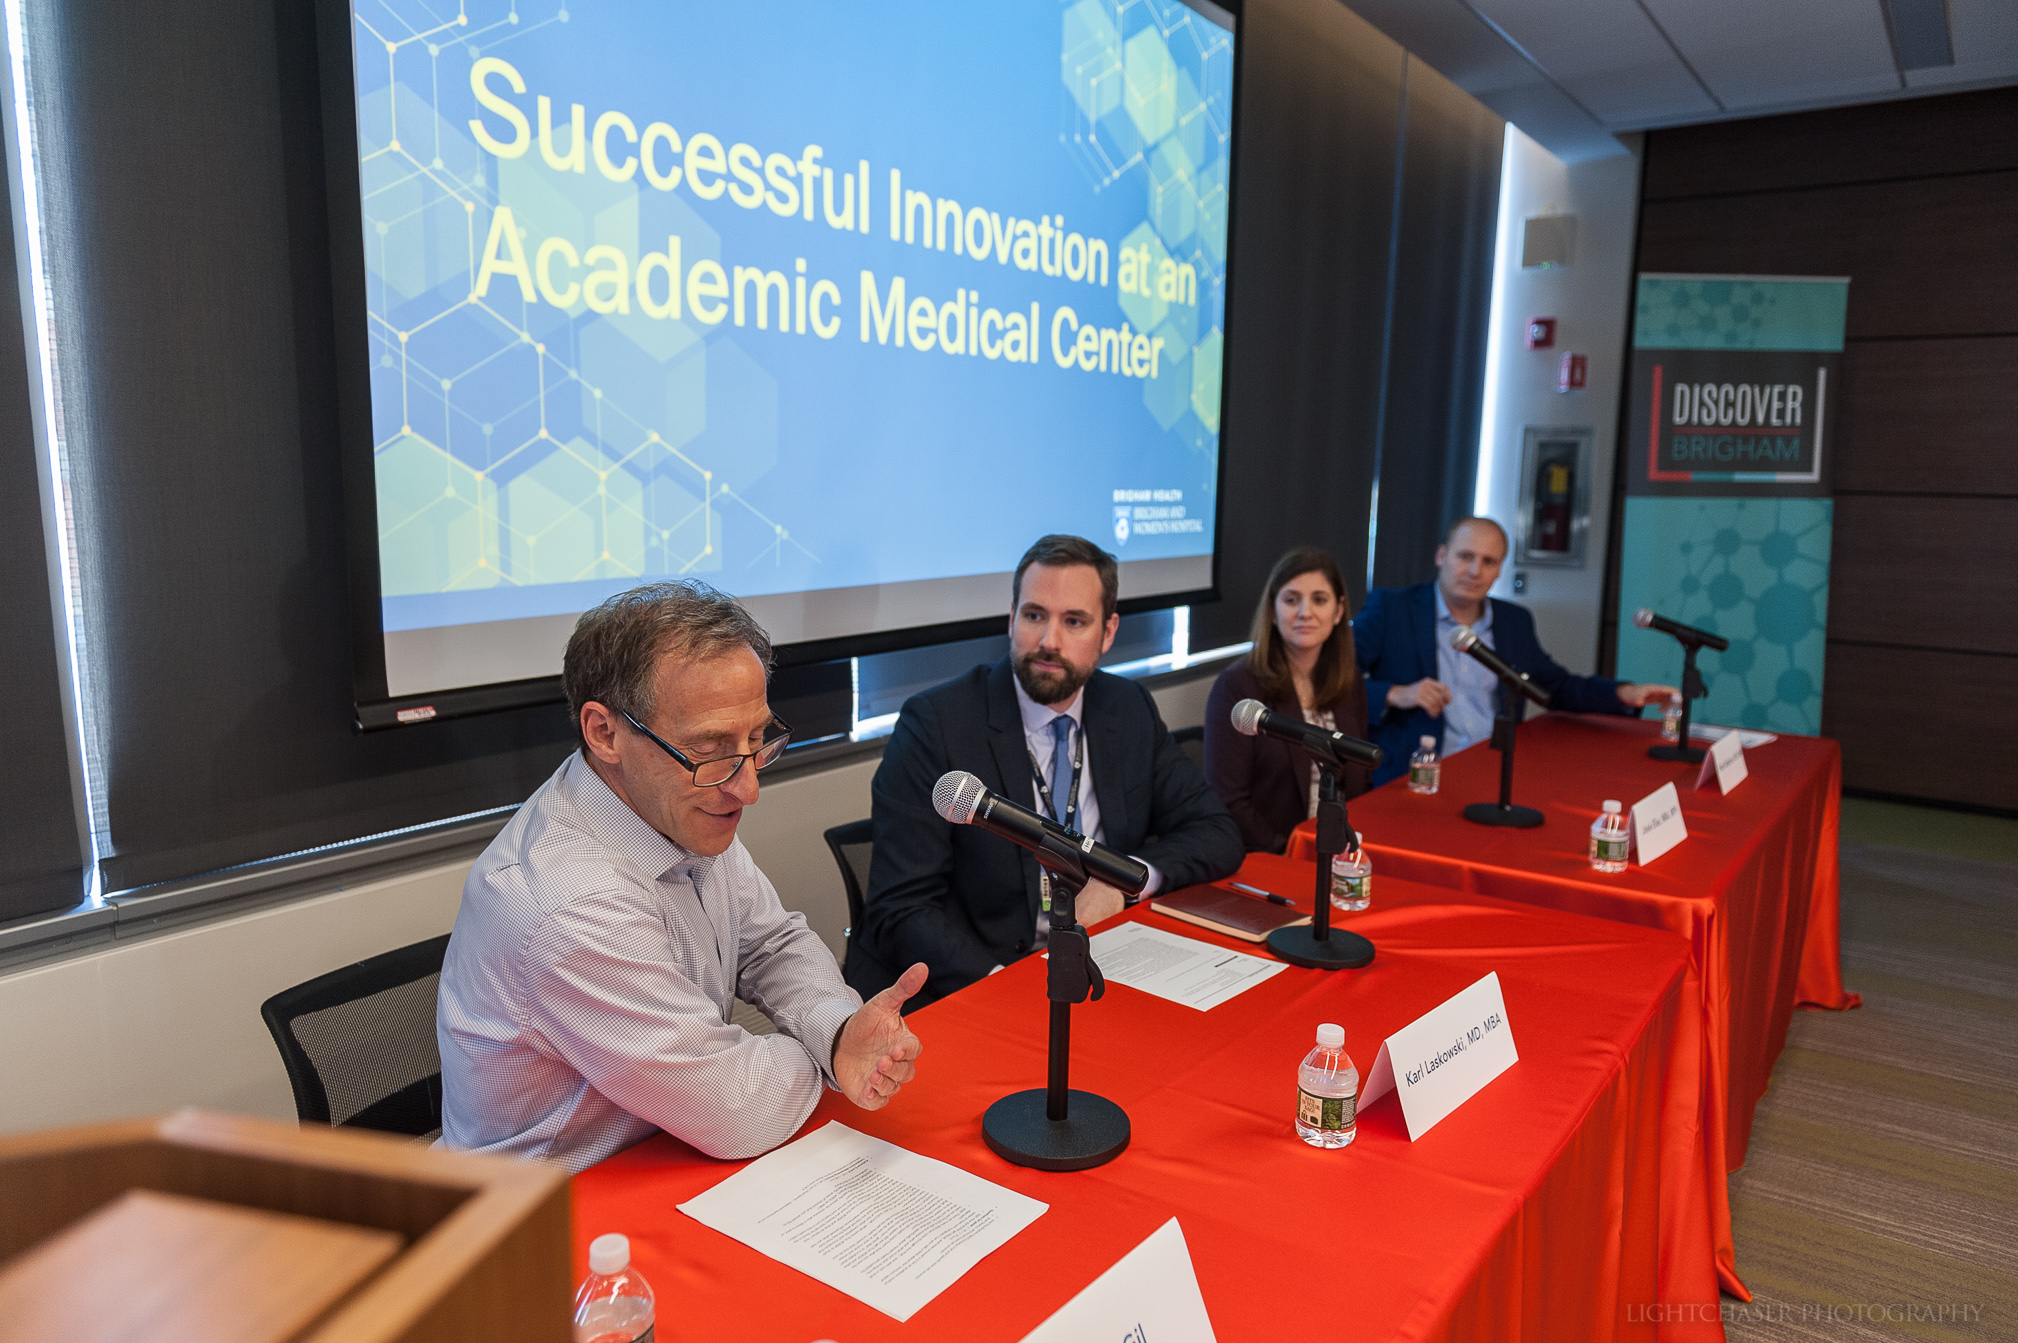 """Successful Innovation at an AMC – Discover Brigham   At the 2018 Discover Brigham celebration, Josie Elias, MBA, MPH, joined members of BCRISP and Herald Health during the """"Successful Innovation at an AMC"""" panel discussion, discussing first hand experiences of successfully growing and piloting ventures at the Brigham."""